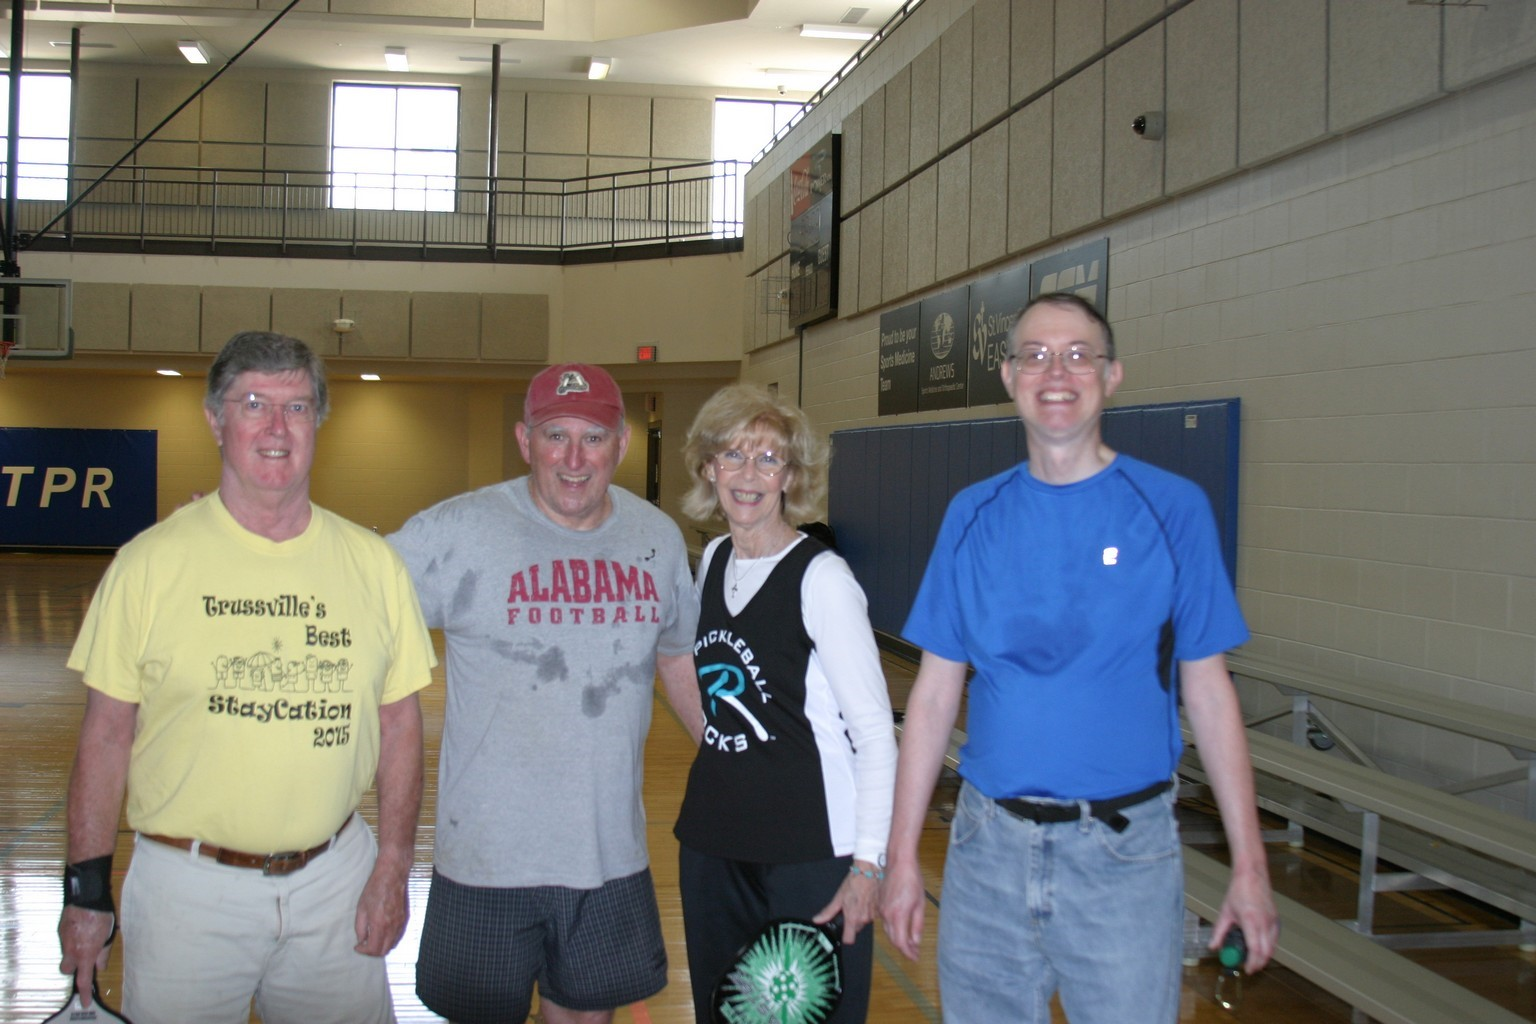 trussville pickleball, birmingham pickleball, pickleball, family pickleball, trussville civic center, trussville, alabama